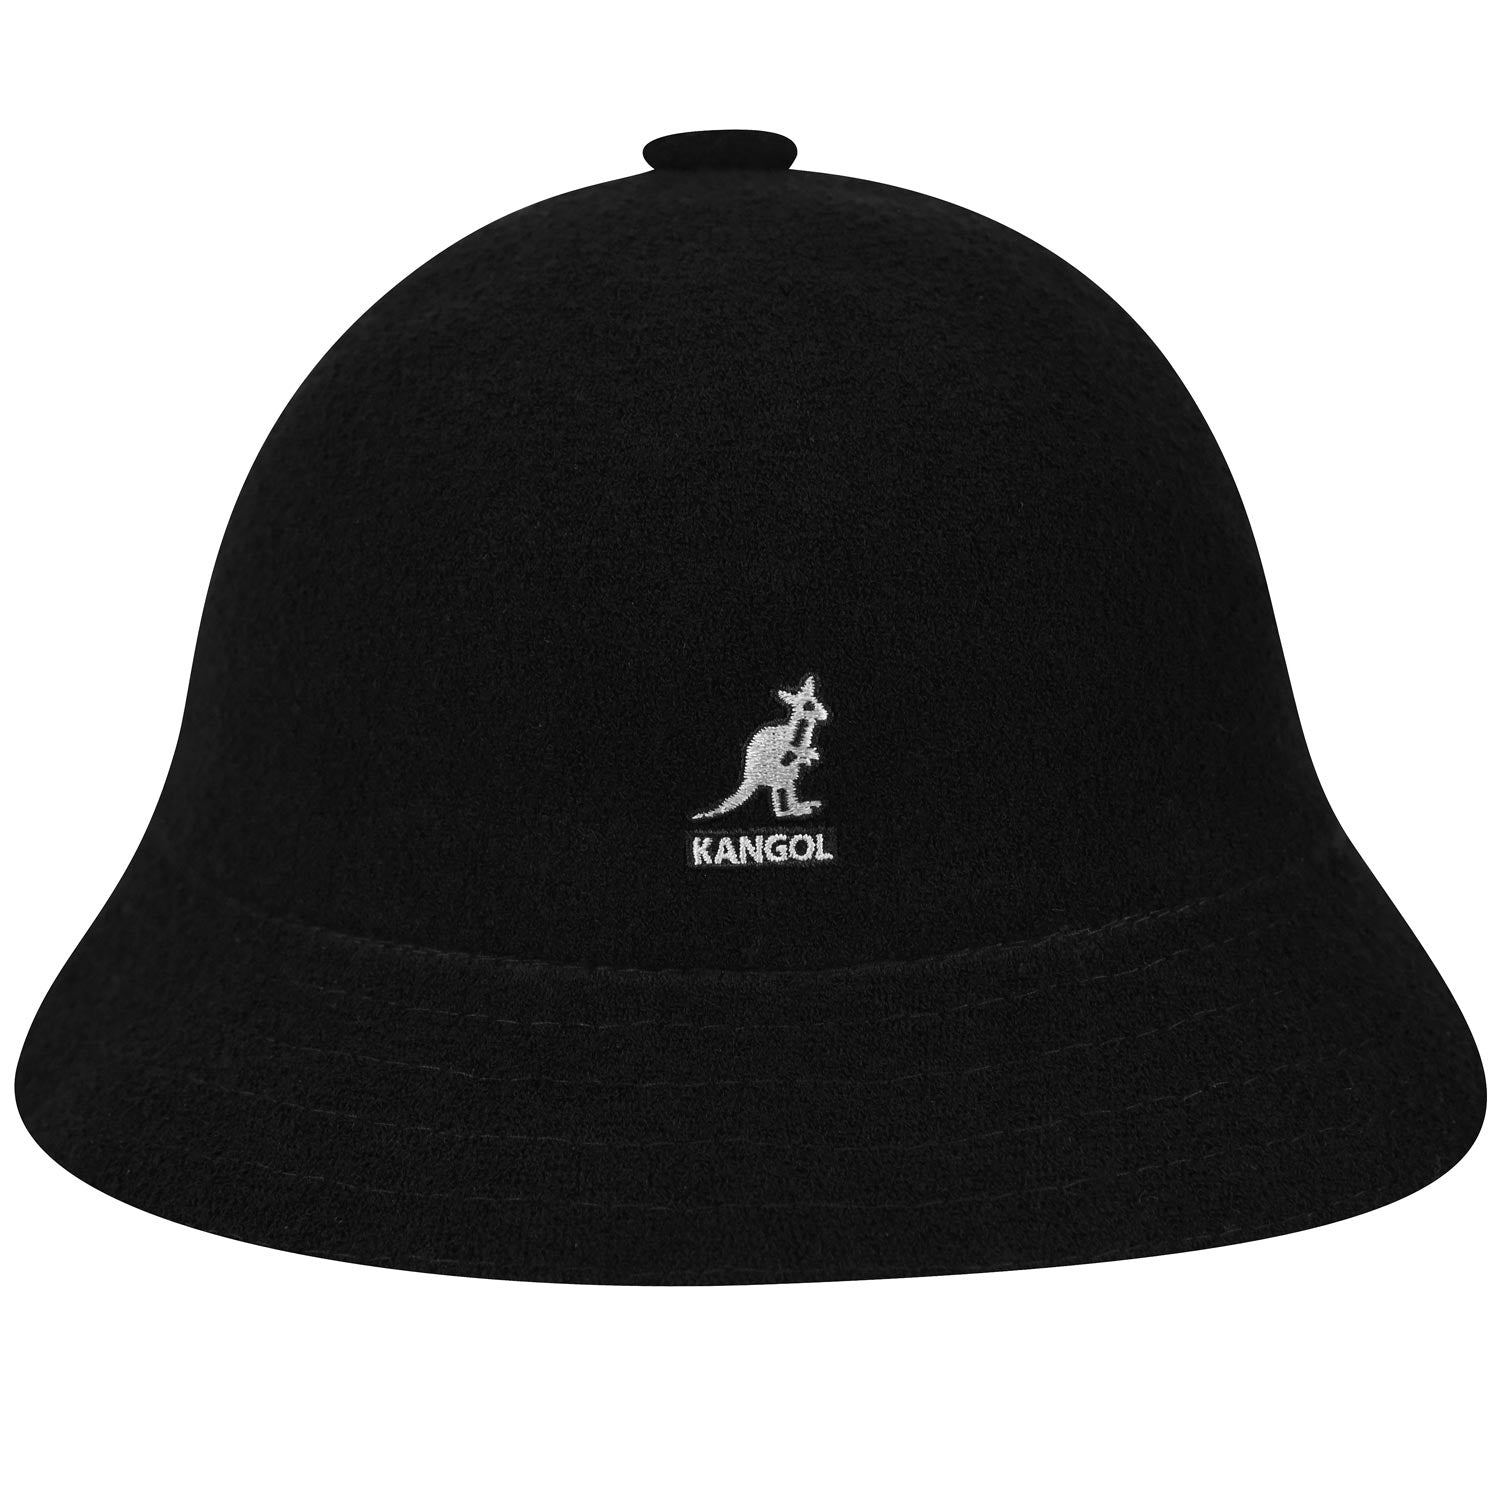 622d14d3 Bermuda Casual by Kangol – Levine Hat Co.